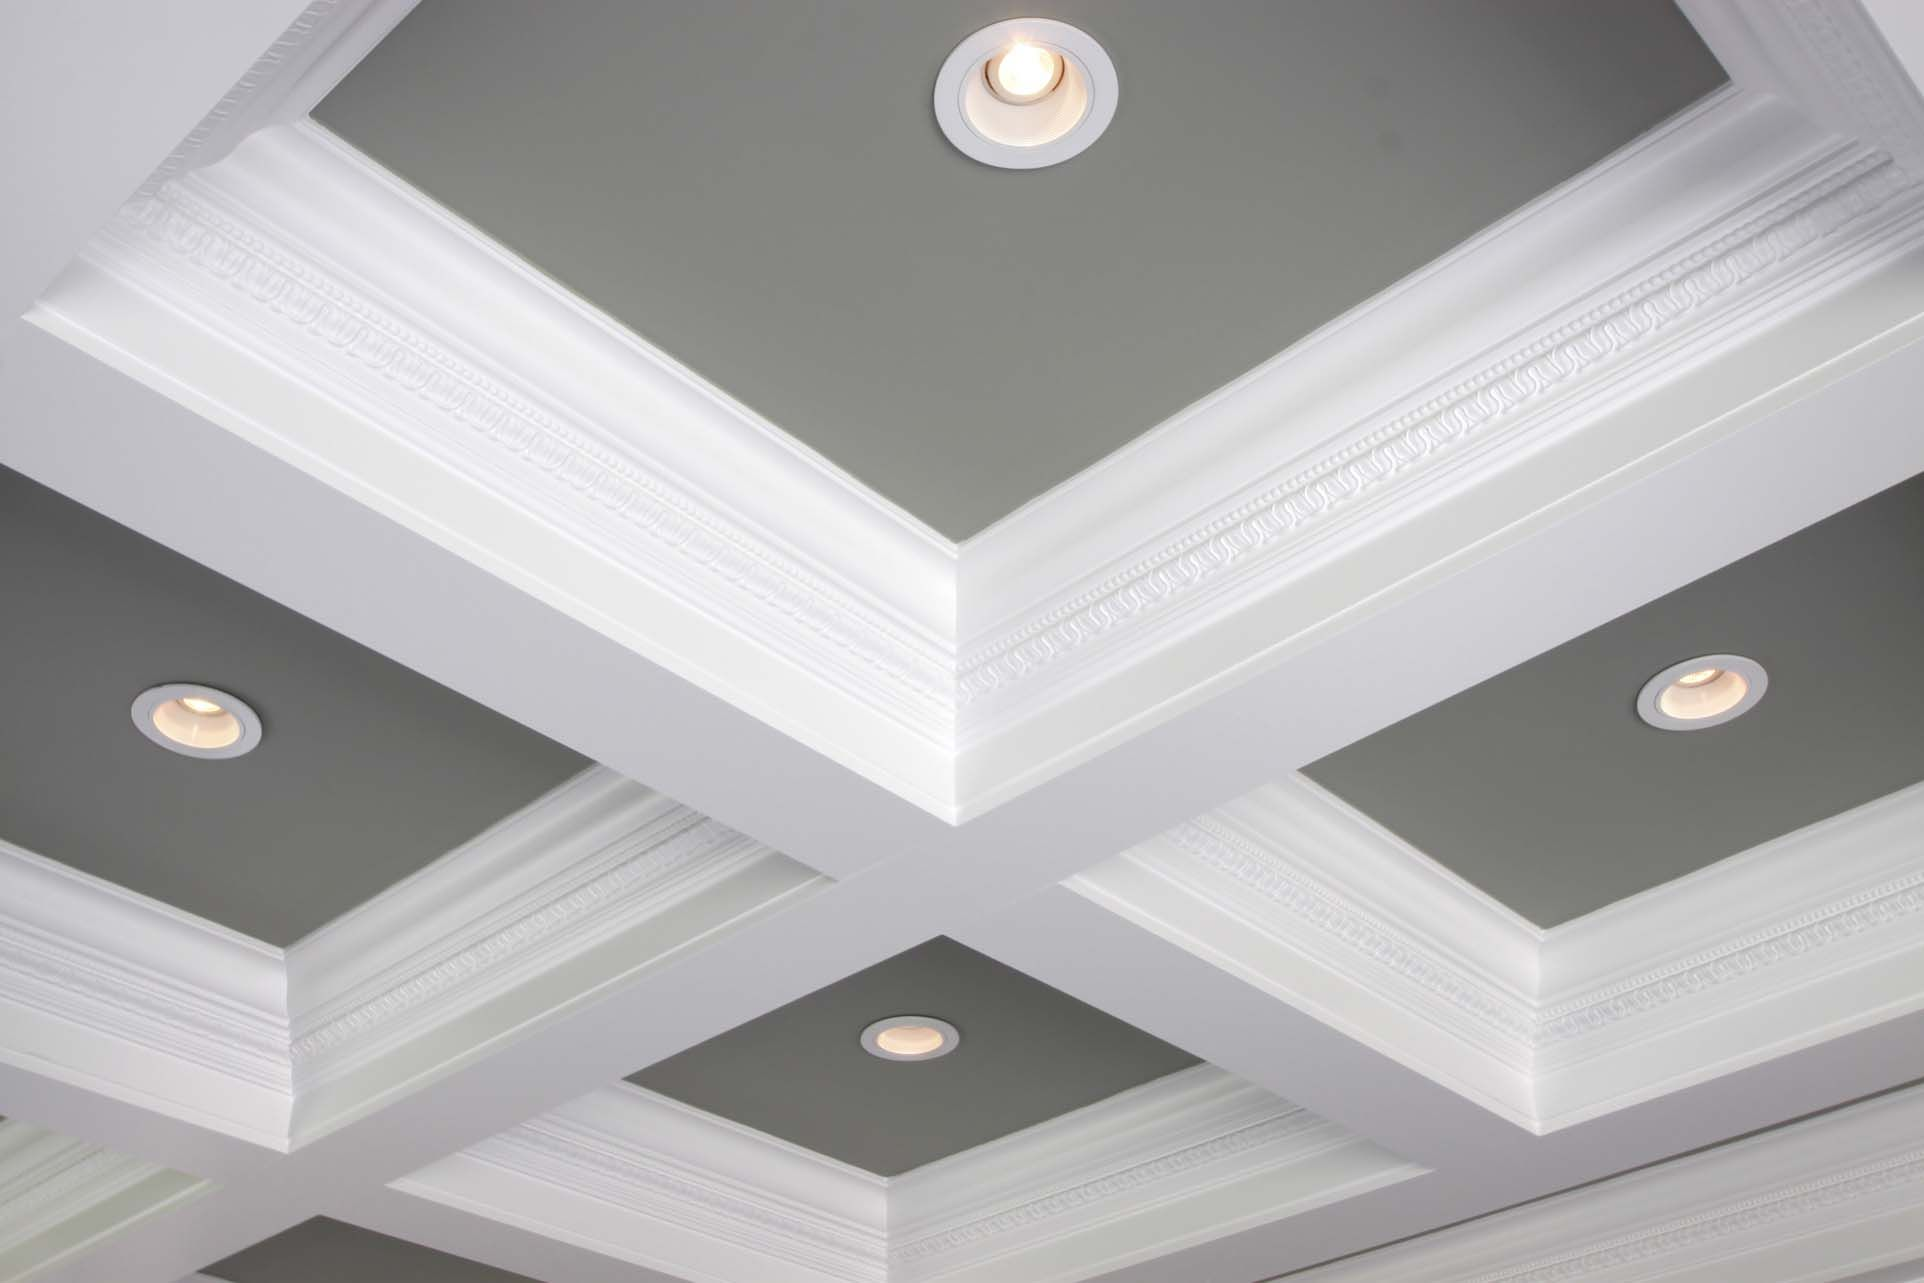 Coffered Ceiling Design Amp Manufacturing Company Custom Box Beam Ceiling Design Systems Amp Shall